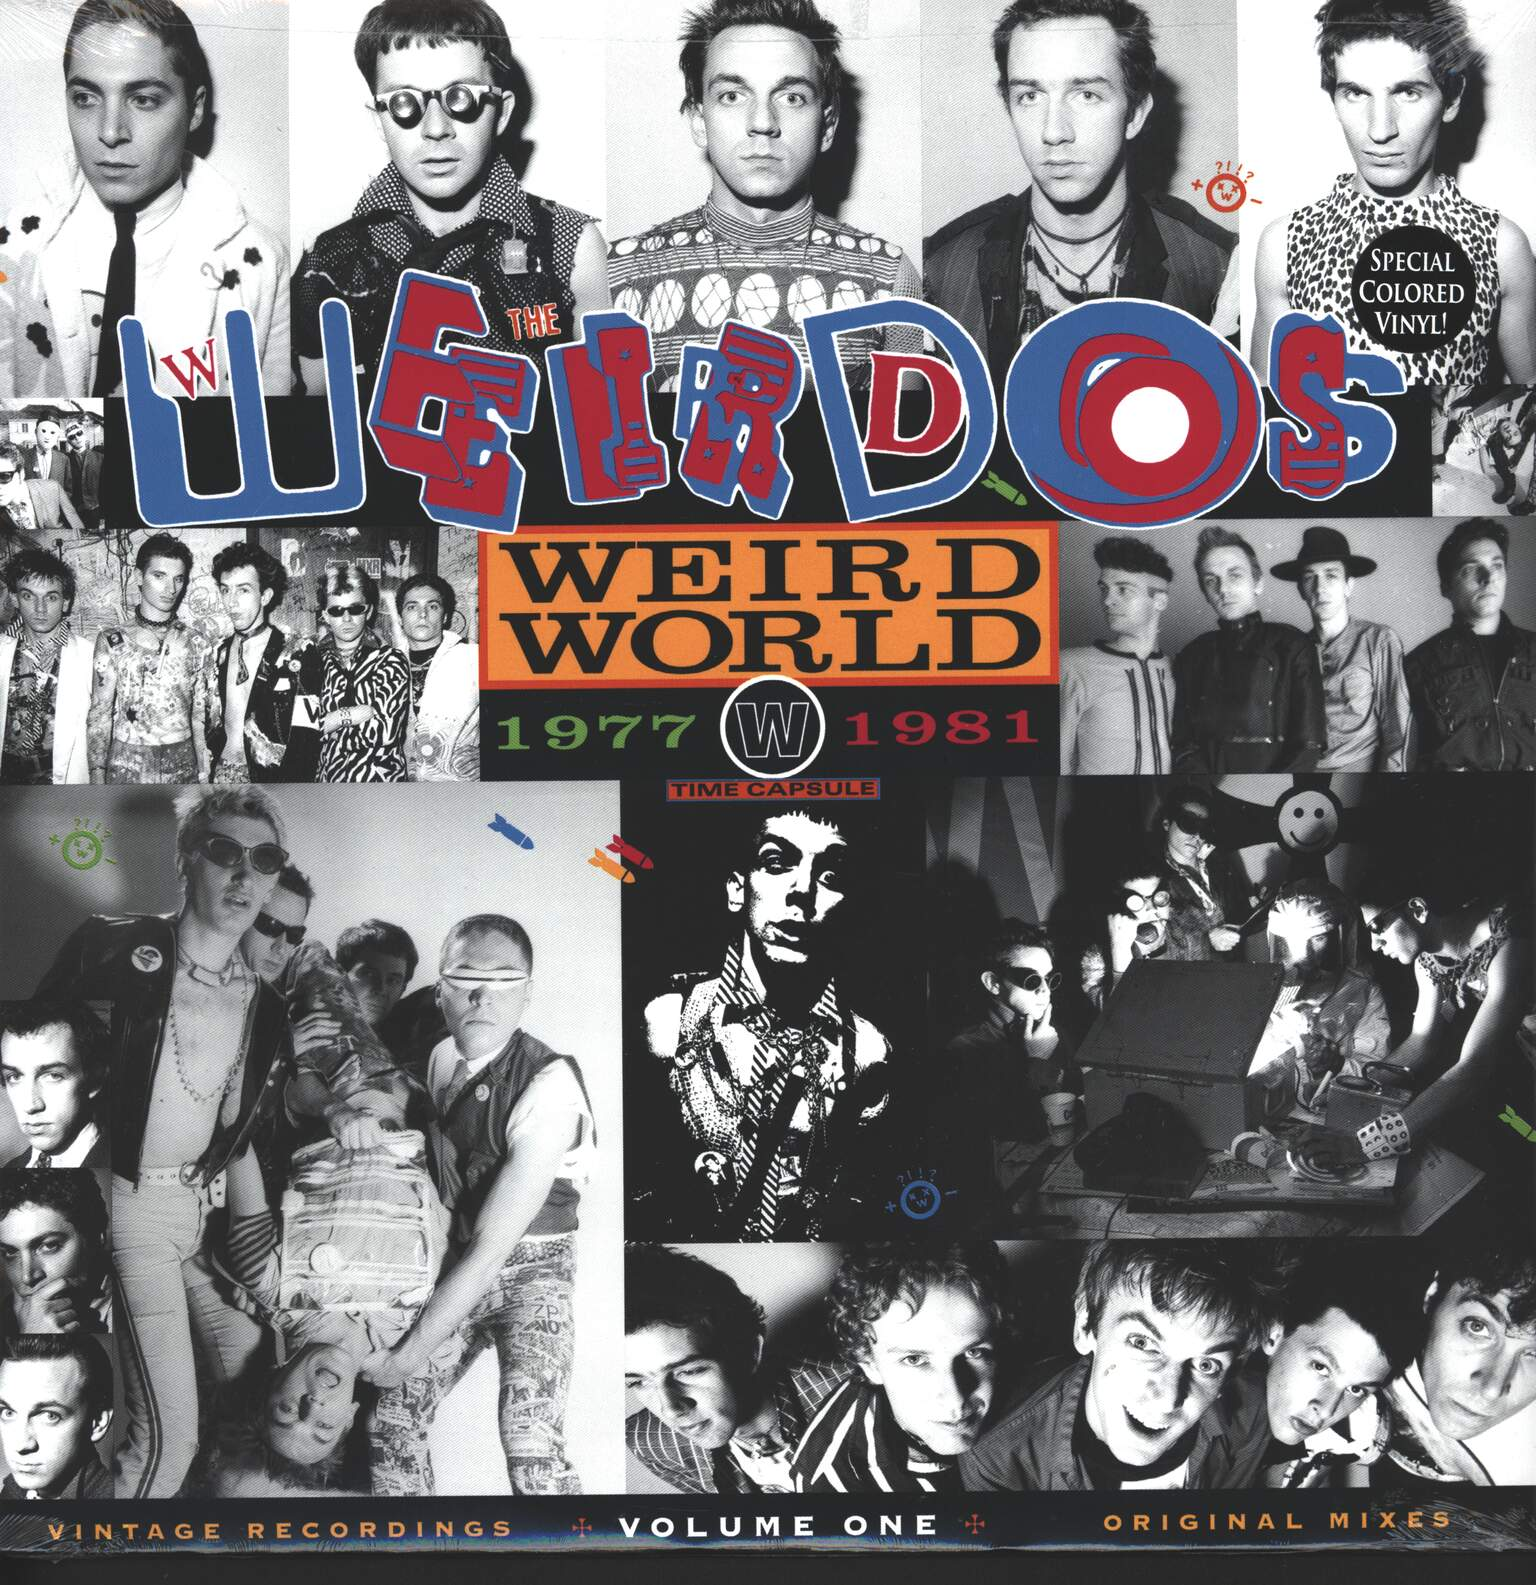 The Weirdos: Weird World - Volume One 1977-1981, 1×LP (Vinyl)